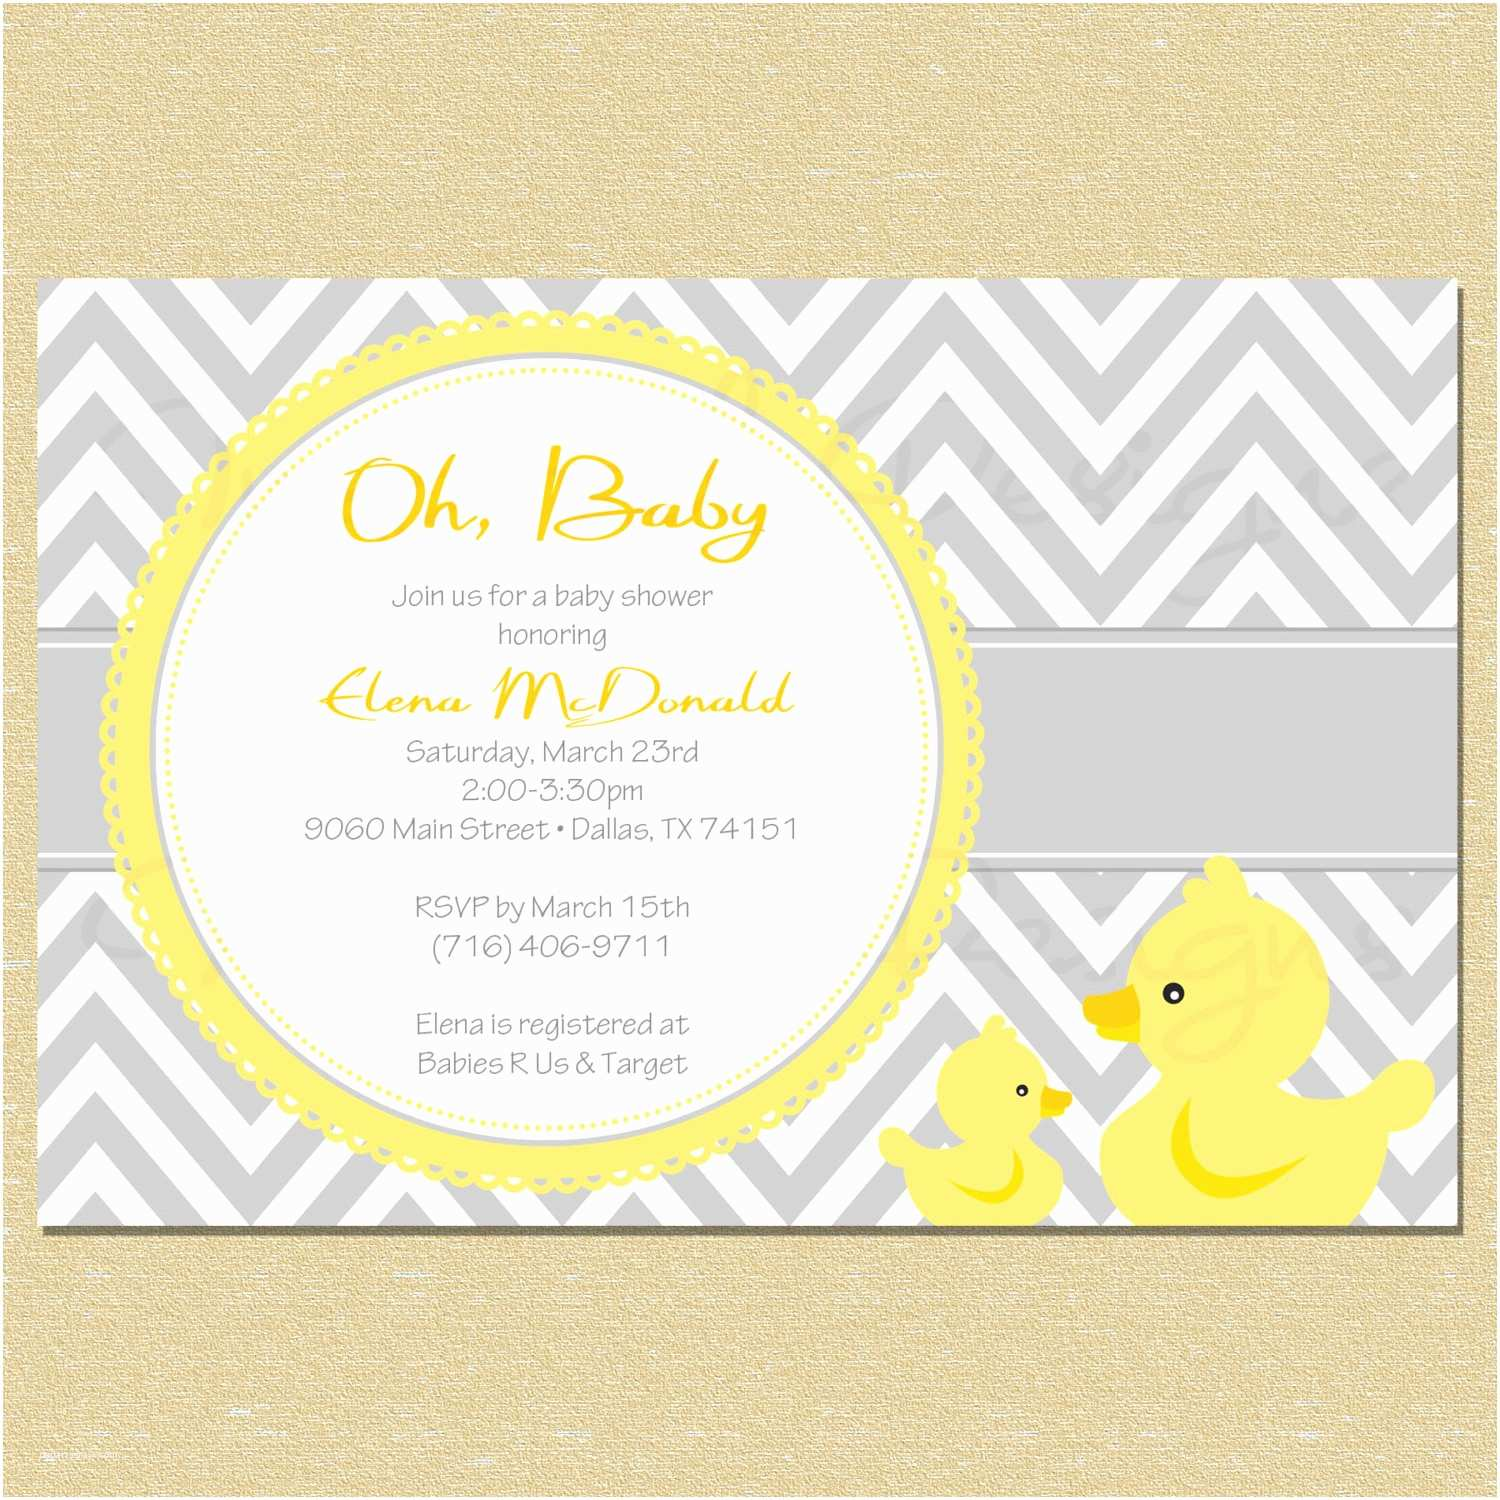 Duck Baby Shower Invitations Duck Baby Shower Party Package Diy by Littlemunchkinprints